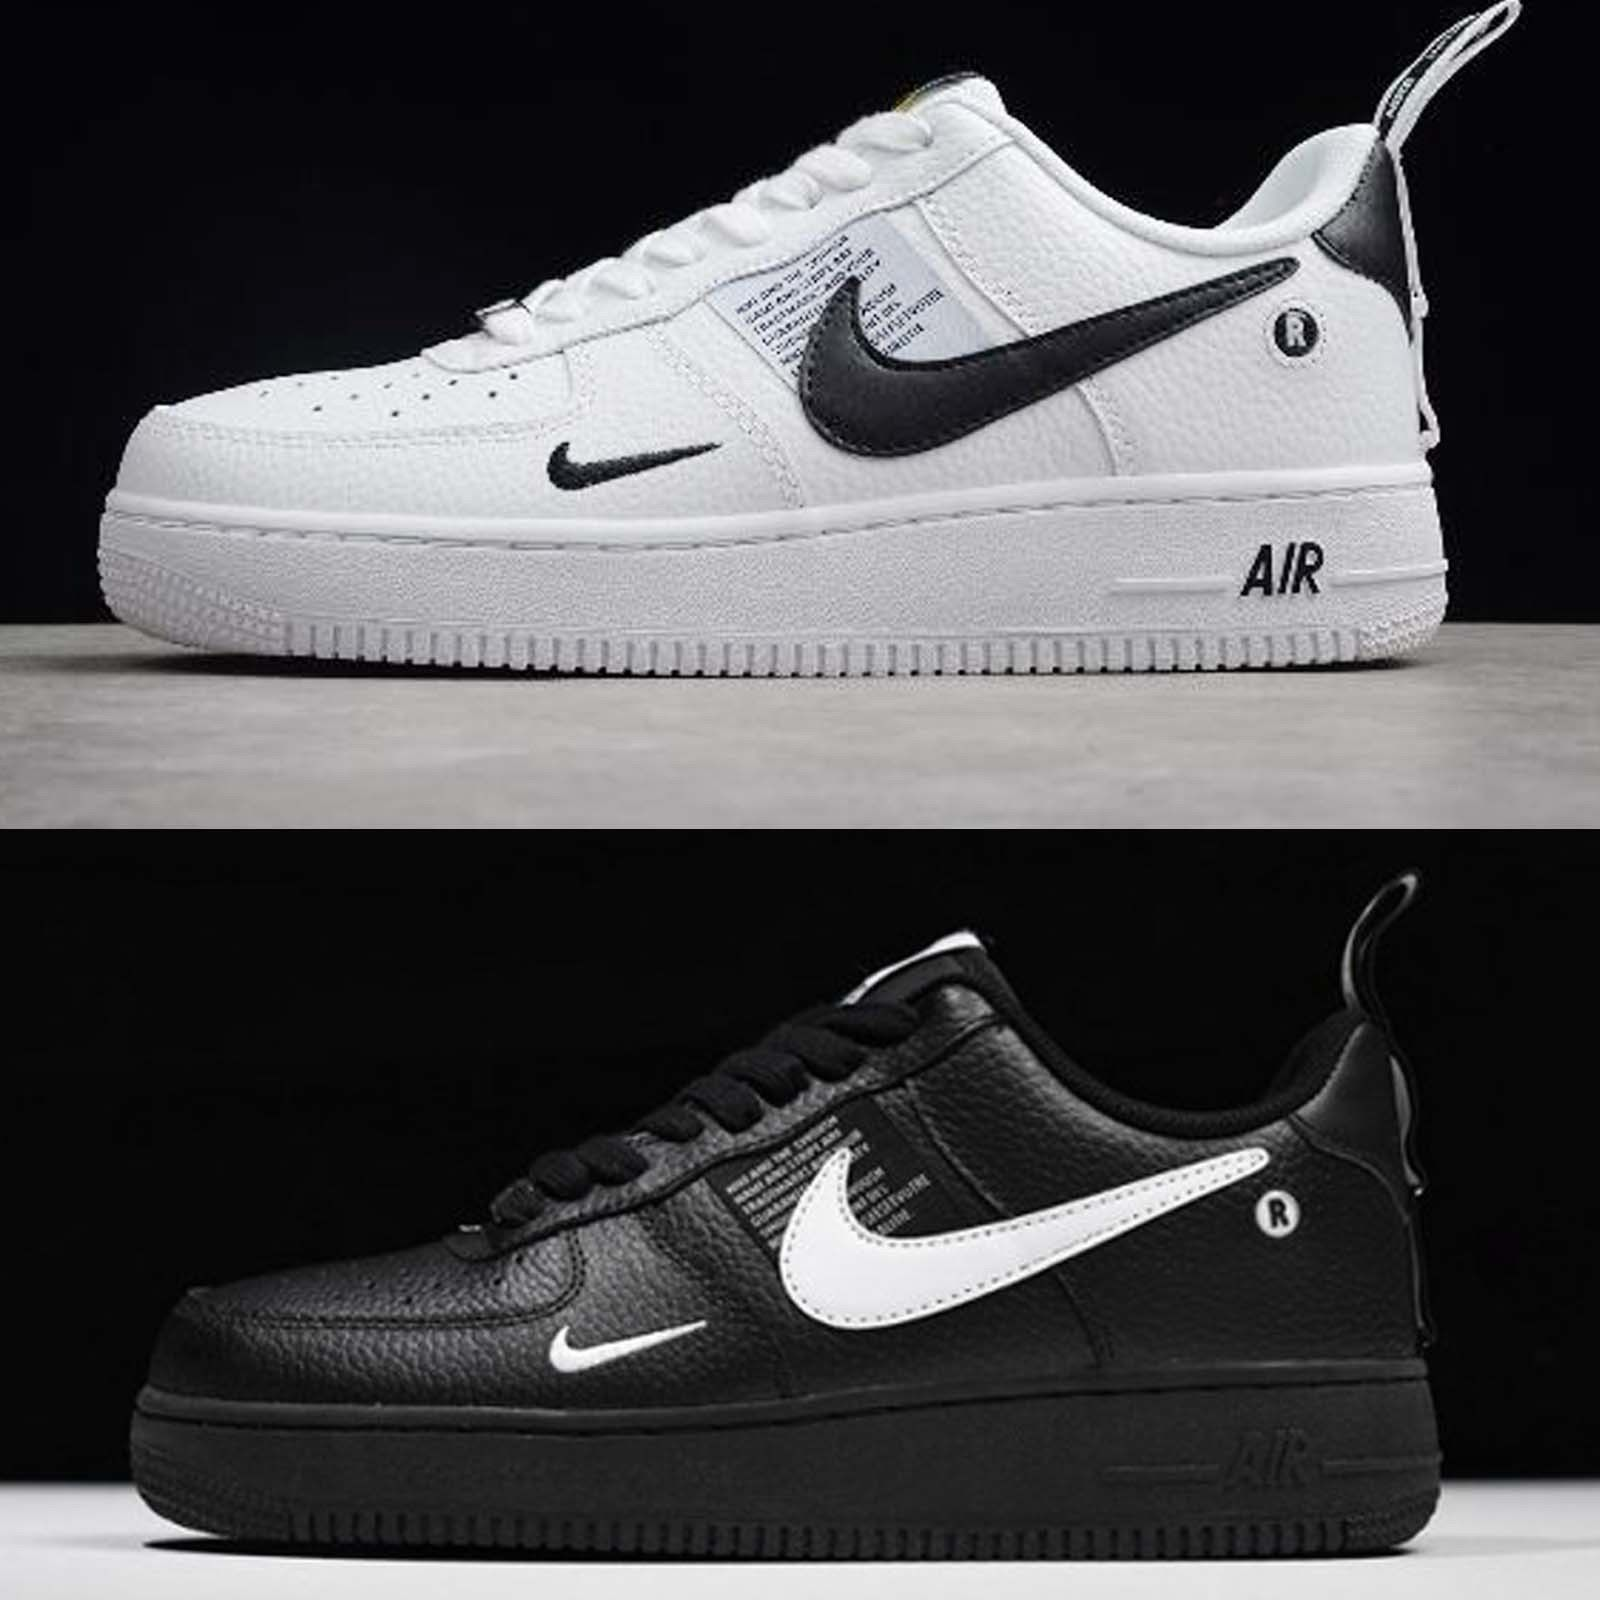 Nike Air Force 1 07 Lv8 Utility Back And White Nike Air Force Black Nike Air Shoes Nike Air Force Ones